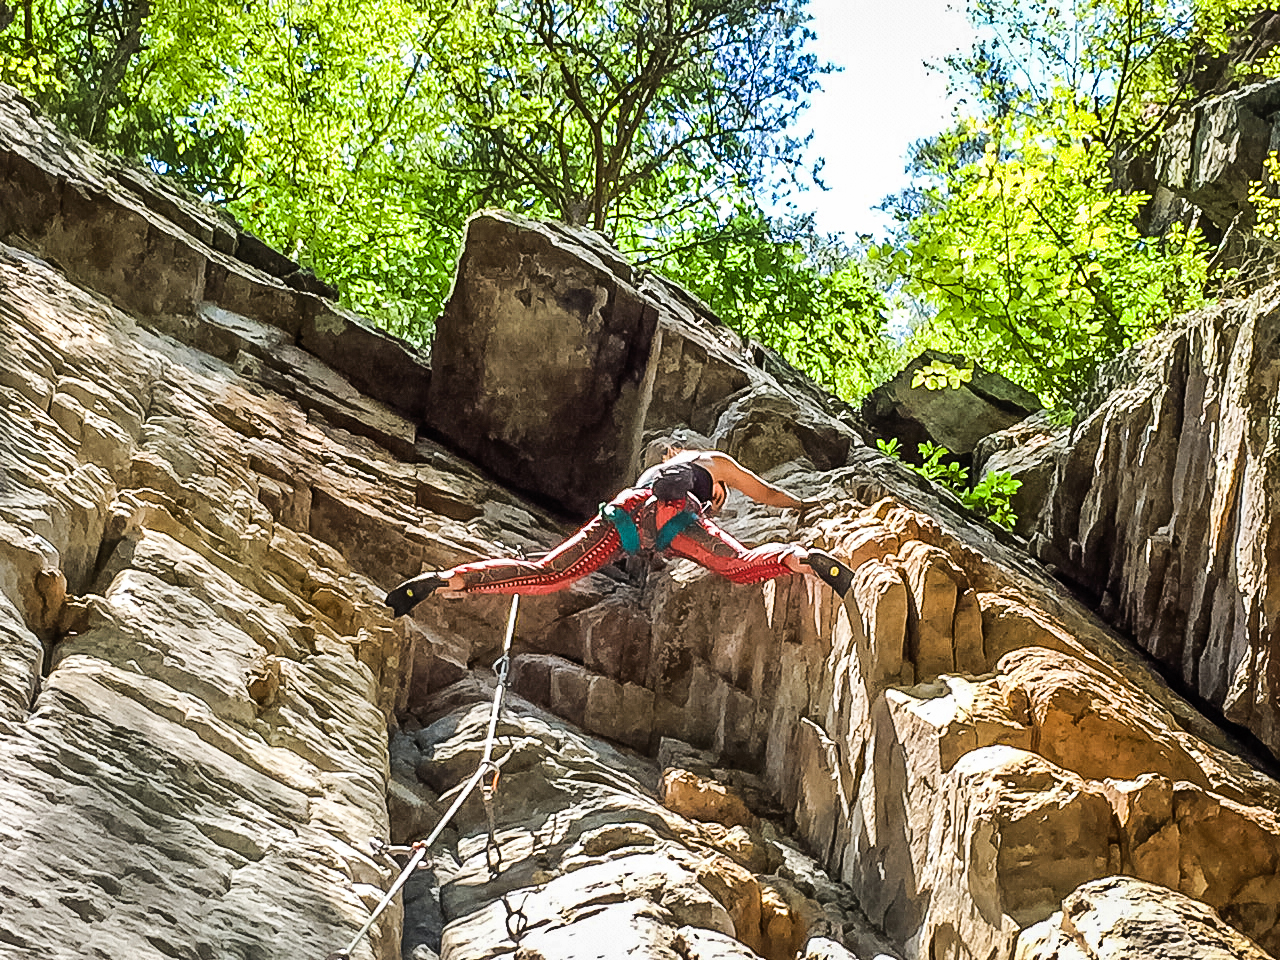 Climbing in Franklin Gorge, West Virginia